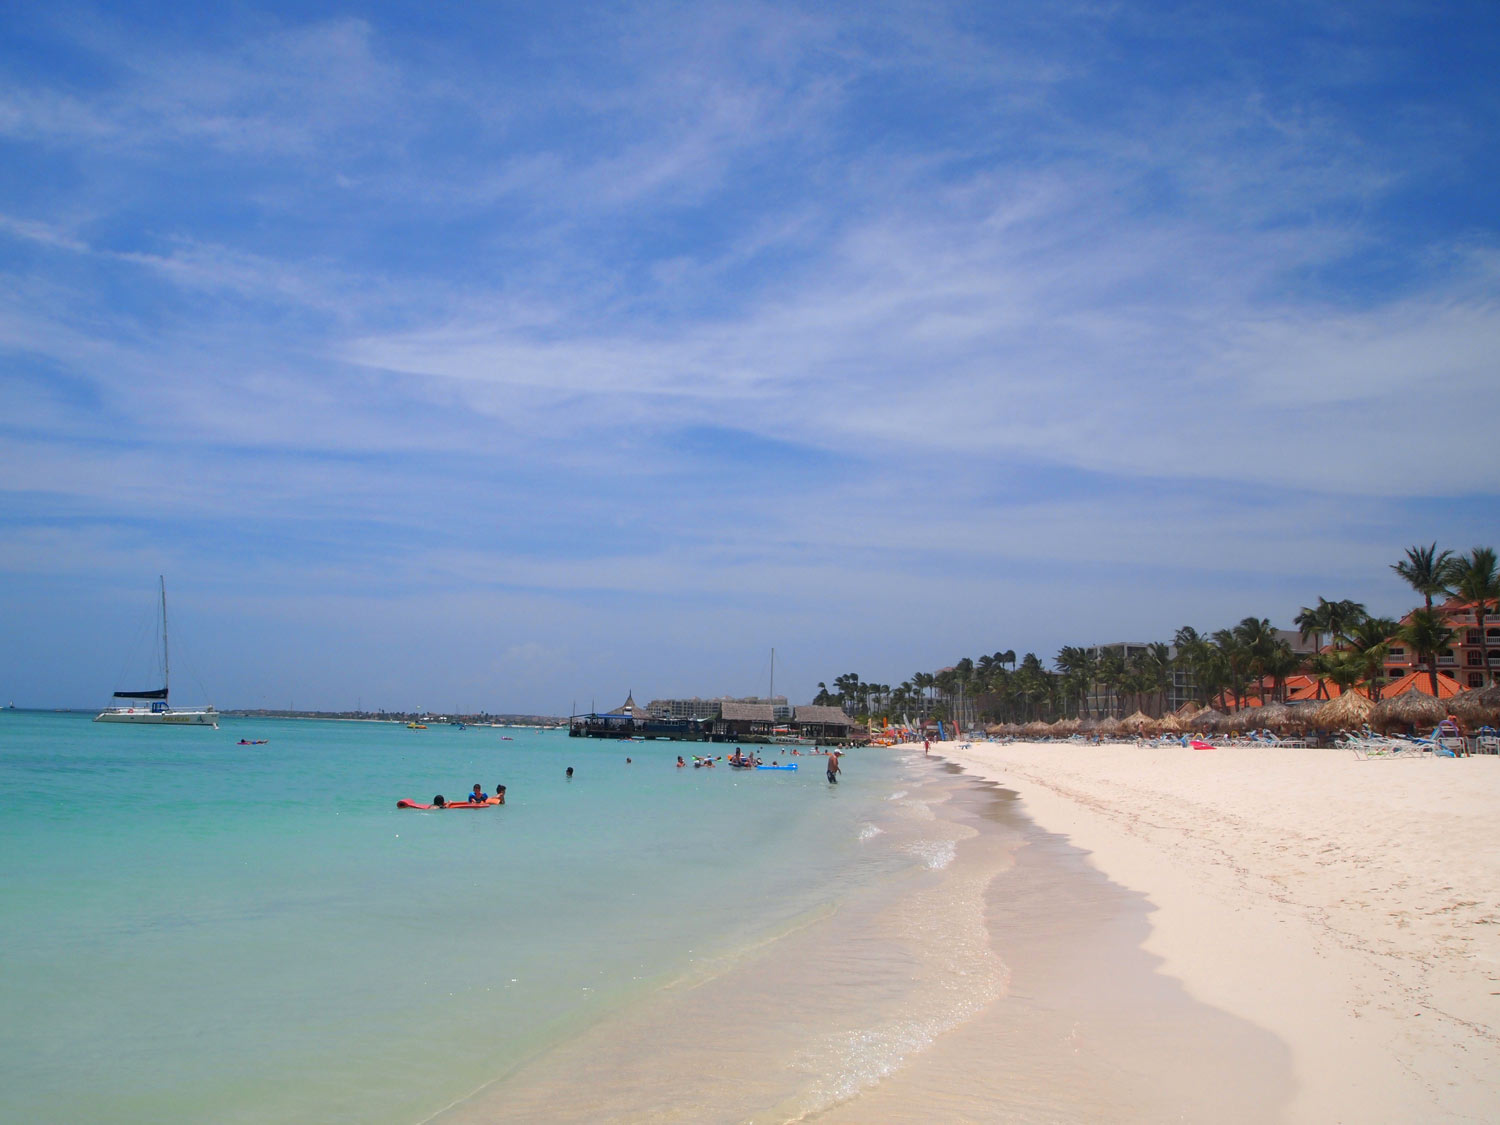 Aruba-Playa-Linda-Resort-Beach.jpg